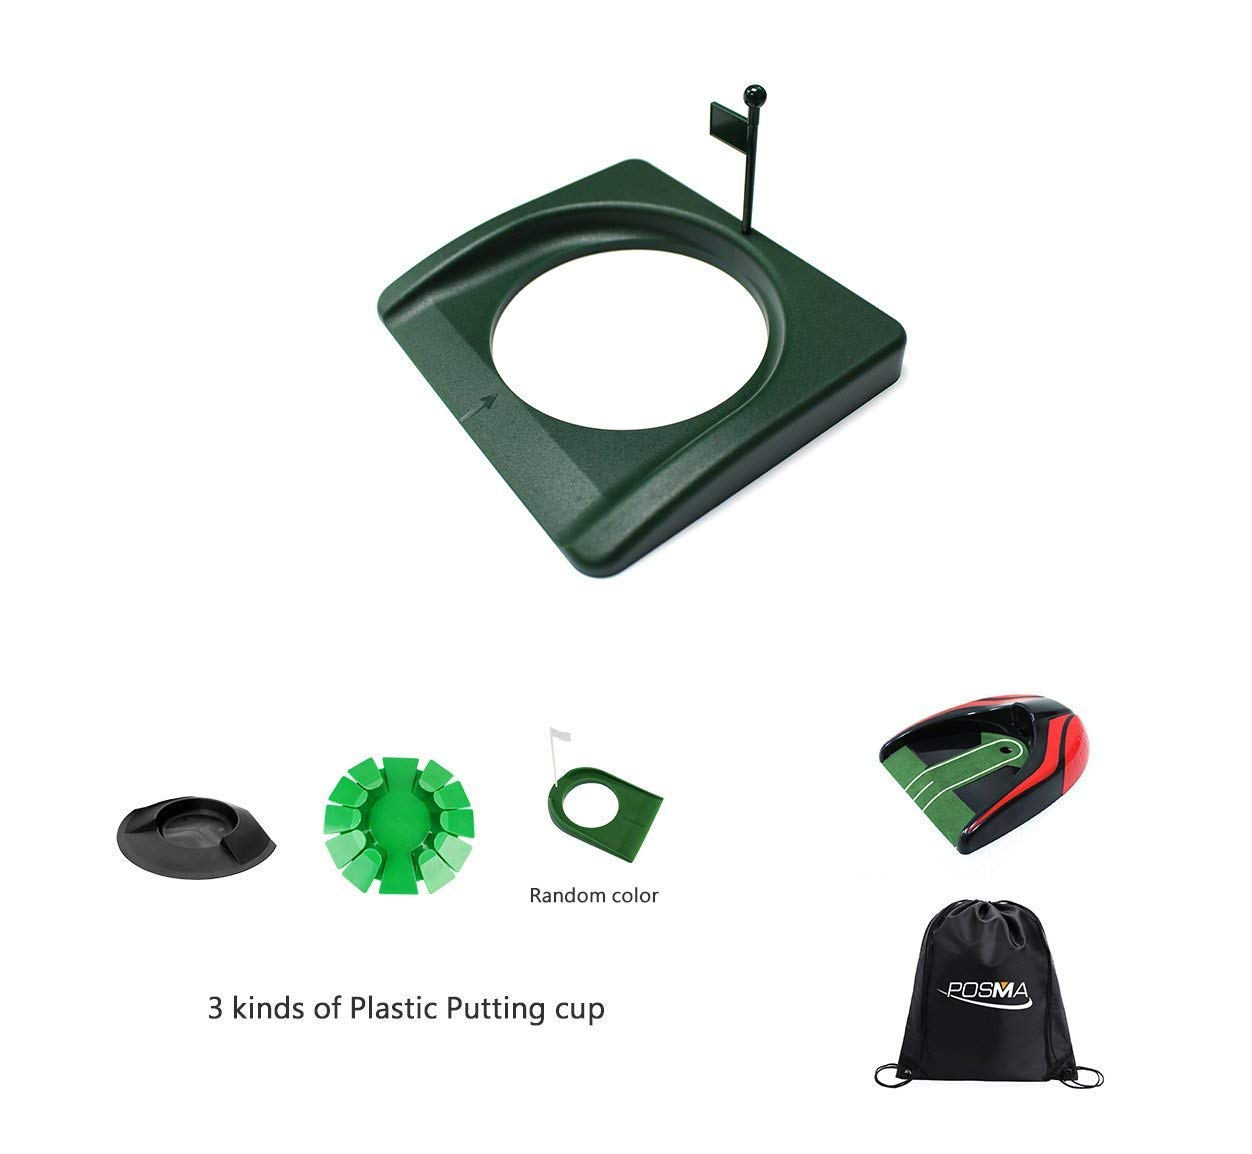 POSMA PHS015 Plastic Practice Putting Cup Golf Hole Training Aid Set, Putting Cup + Return Putting Cup + Carry Bag